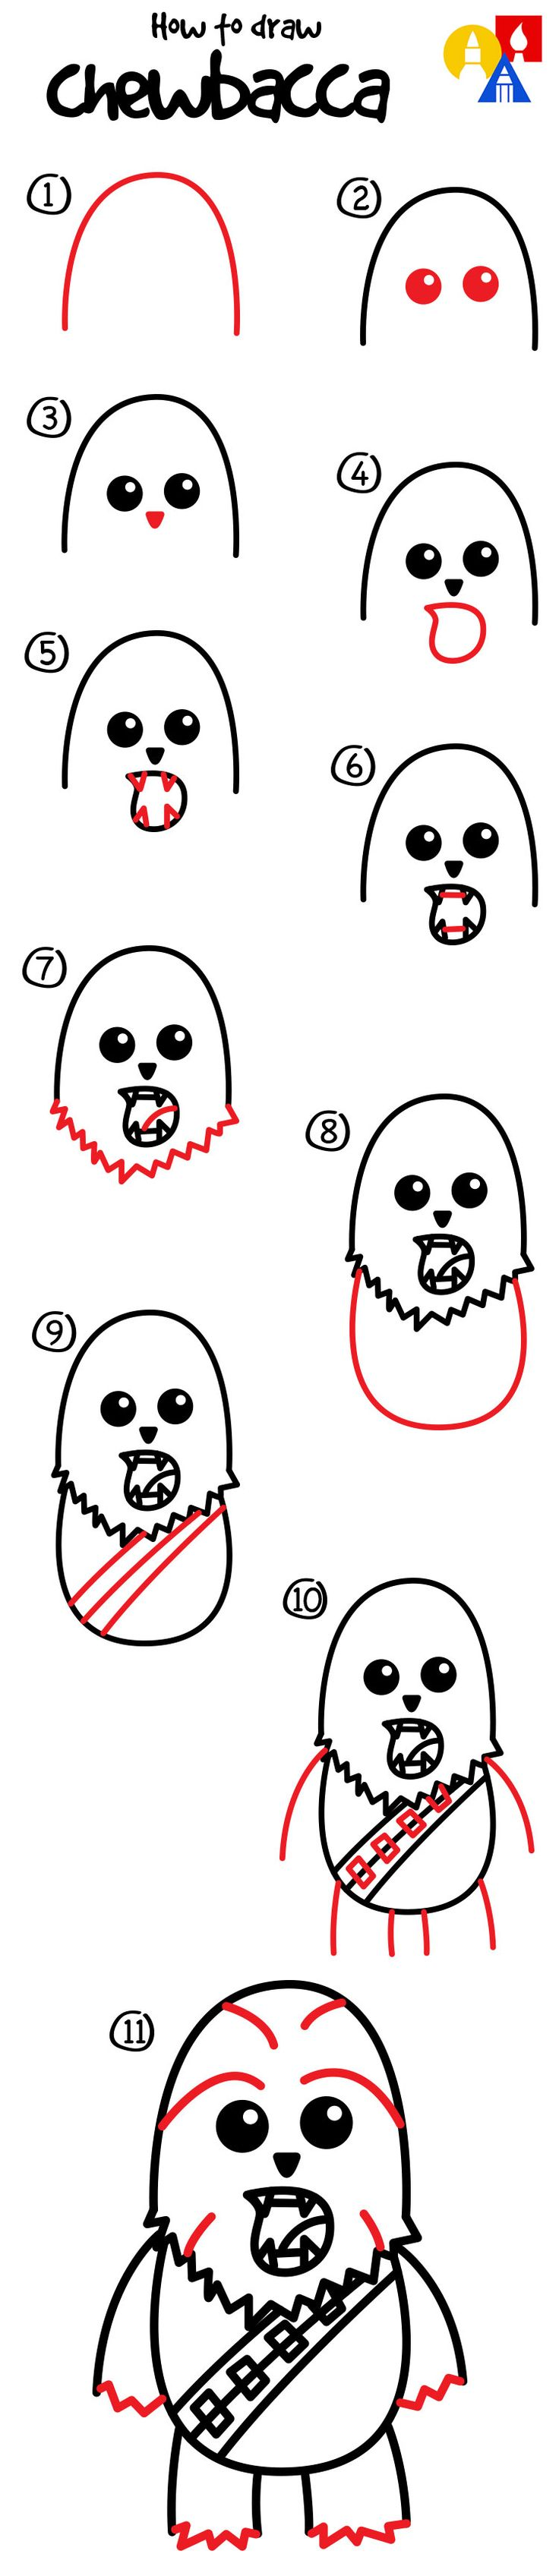 Learn how to draw a cartoon Chewbacca!